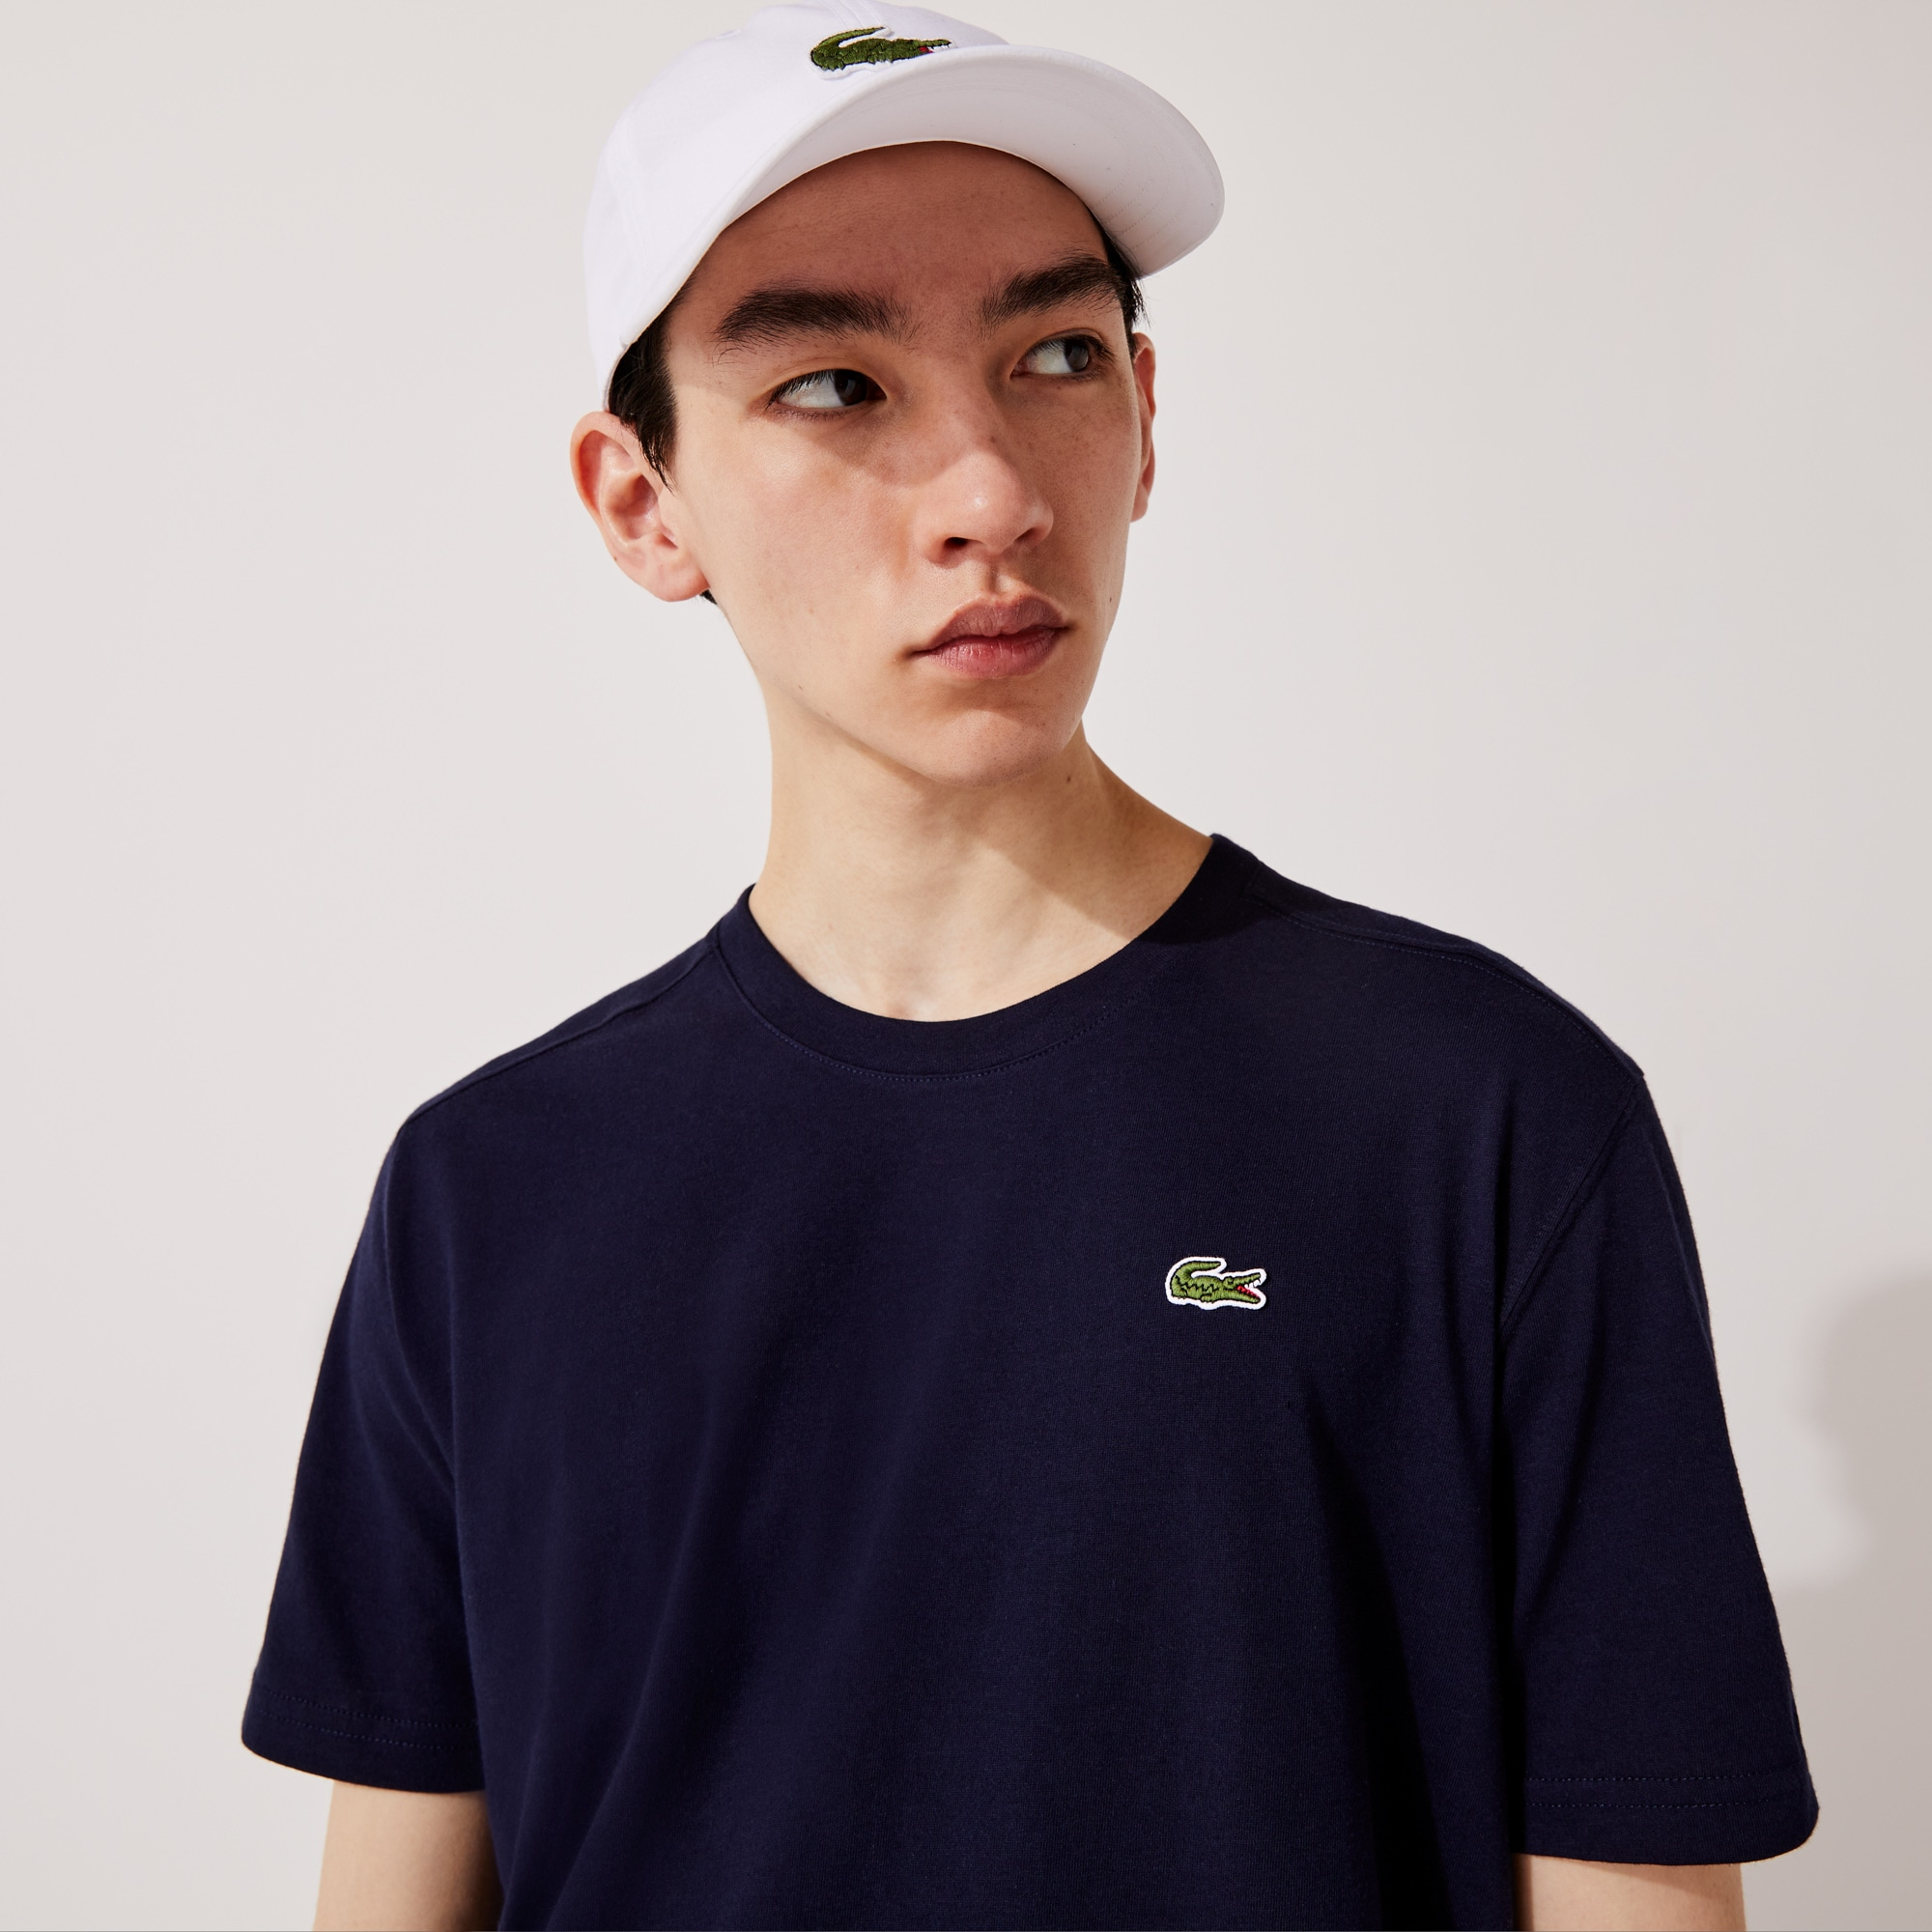 Men's SPORT Crew Neck Tennis T-Shirt